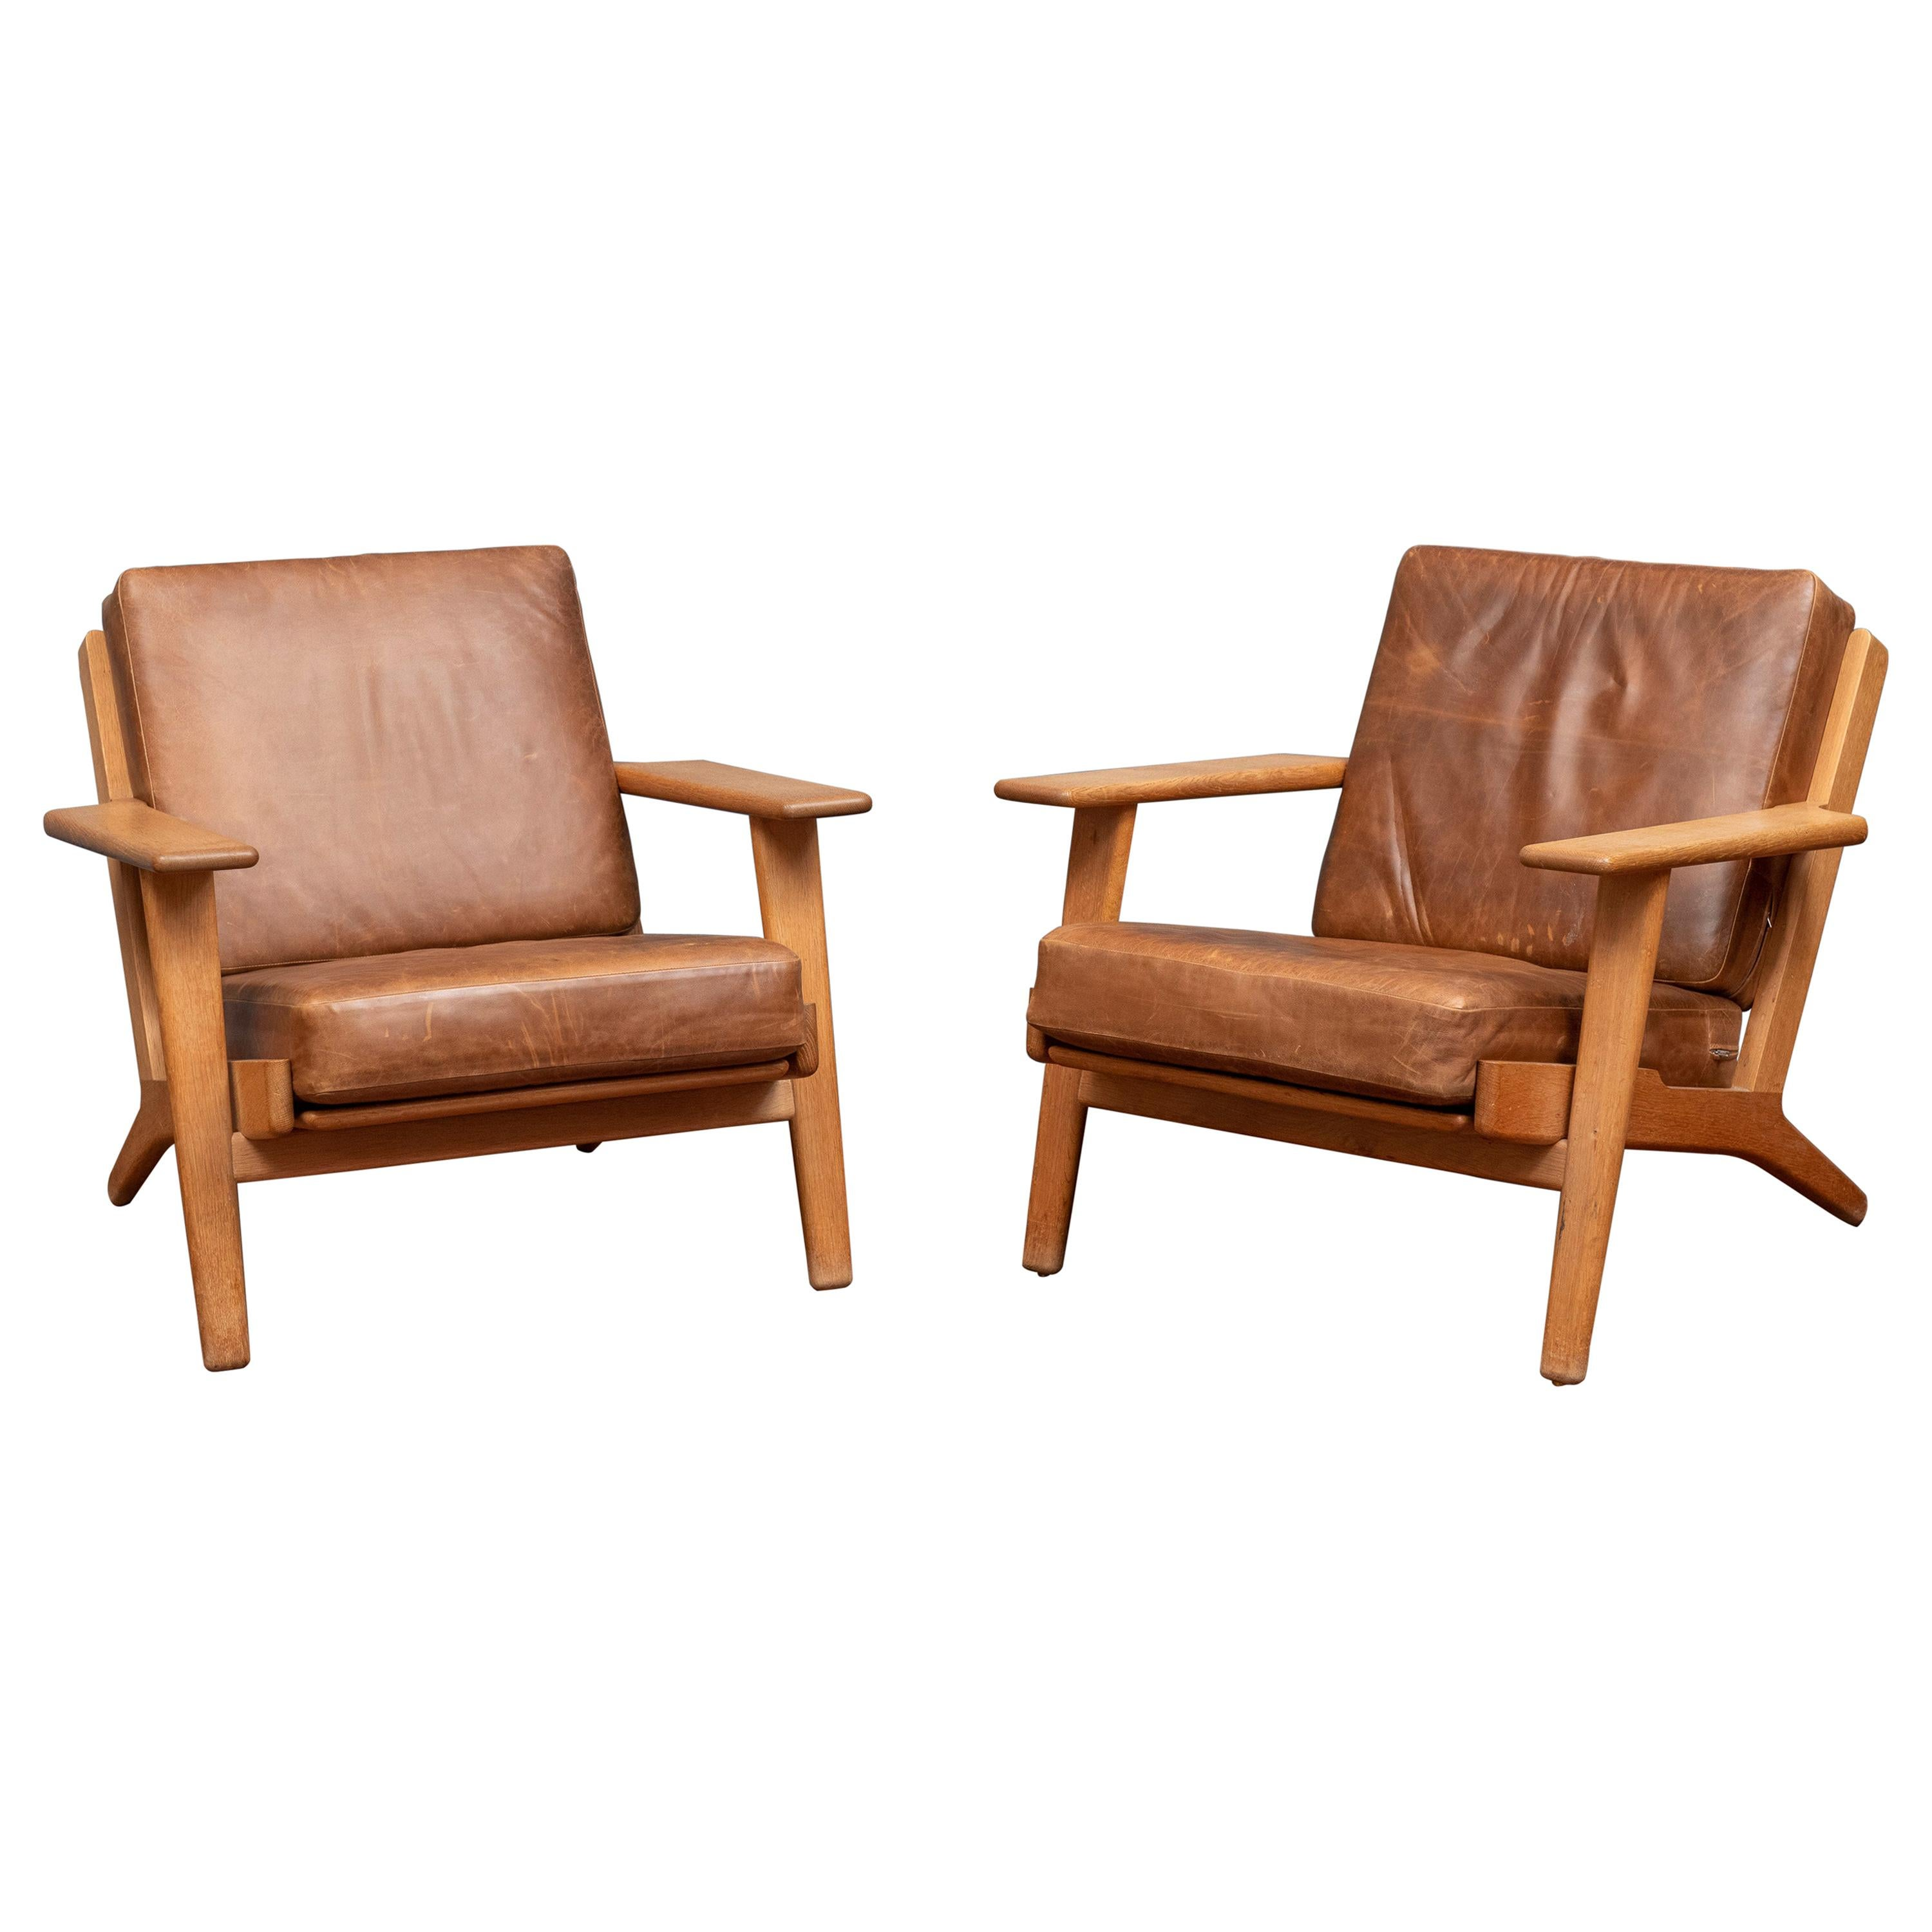 Hans J Wegner Lounge Chairs for Getama Model 290